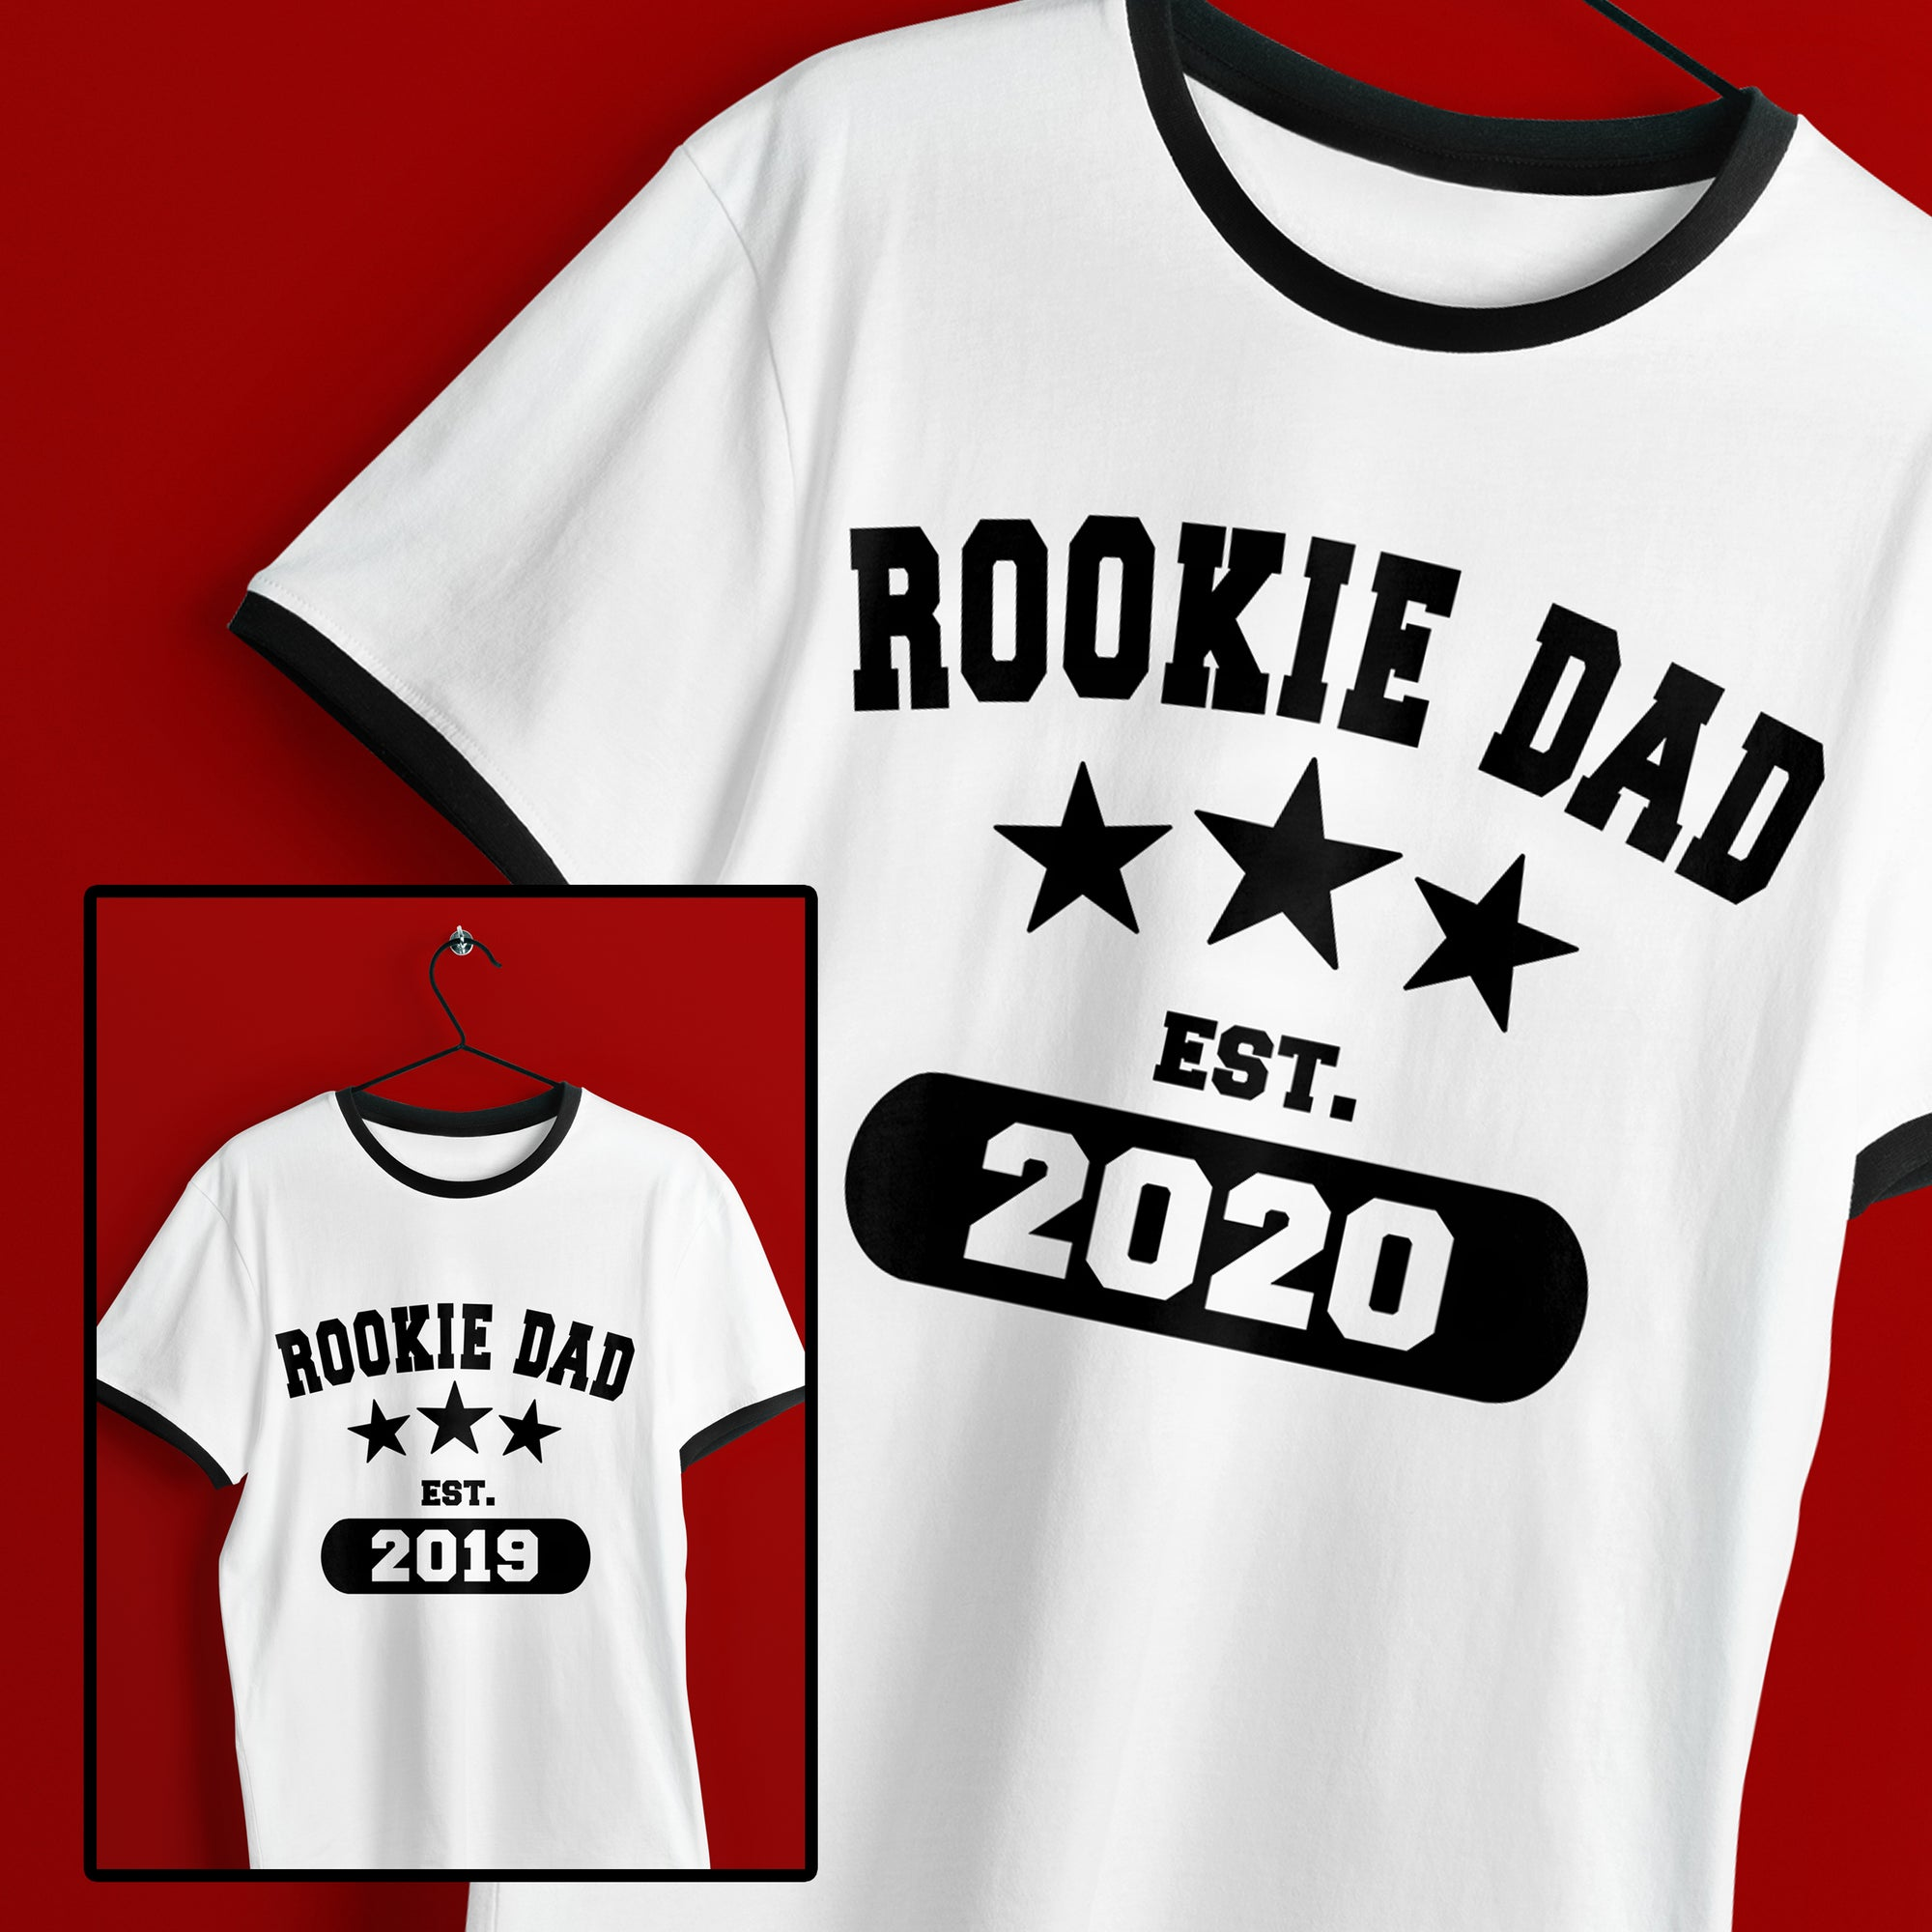 New Dad SVG File, Dad SVG, Father's Day SVG Cut File, New Dad Shirt SVG, Rookie Dad SVG Cut File, Dad Established SVG Cut File